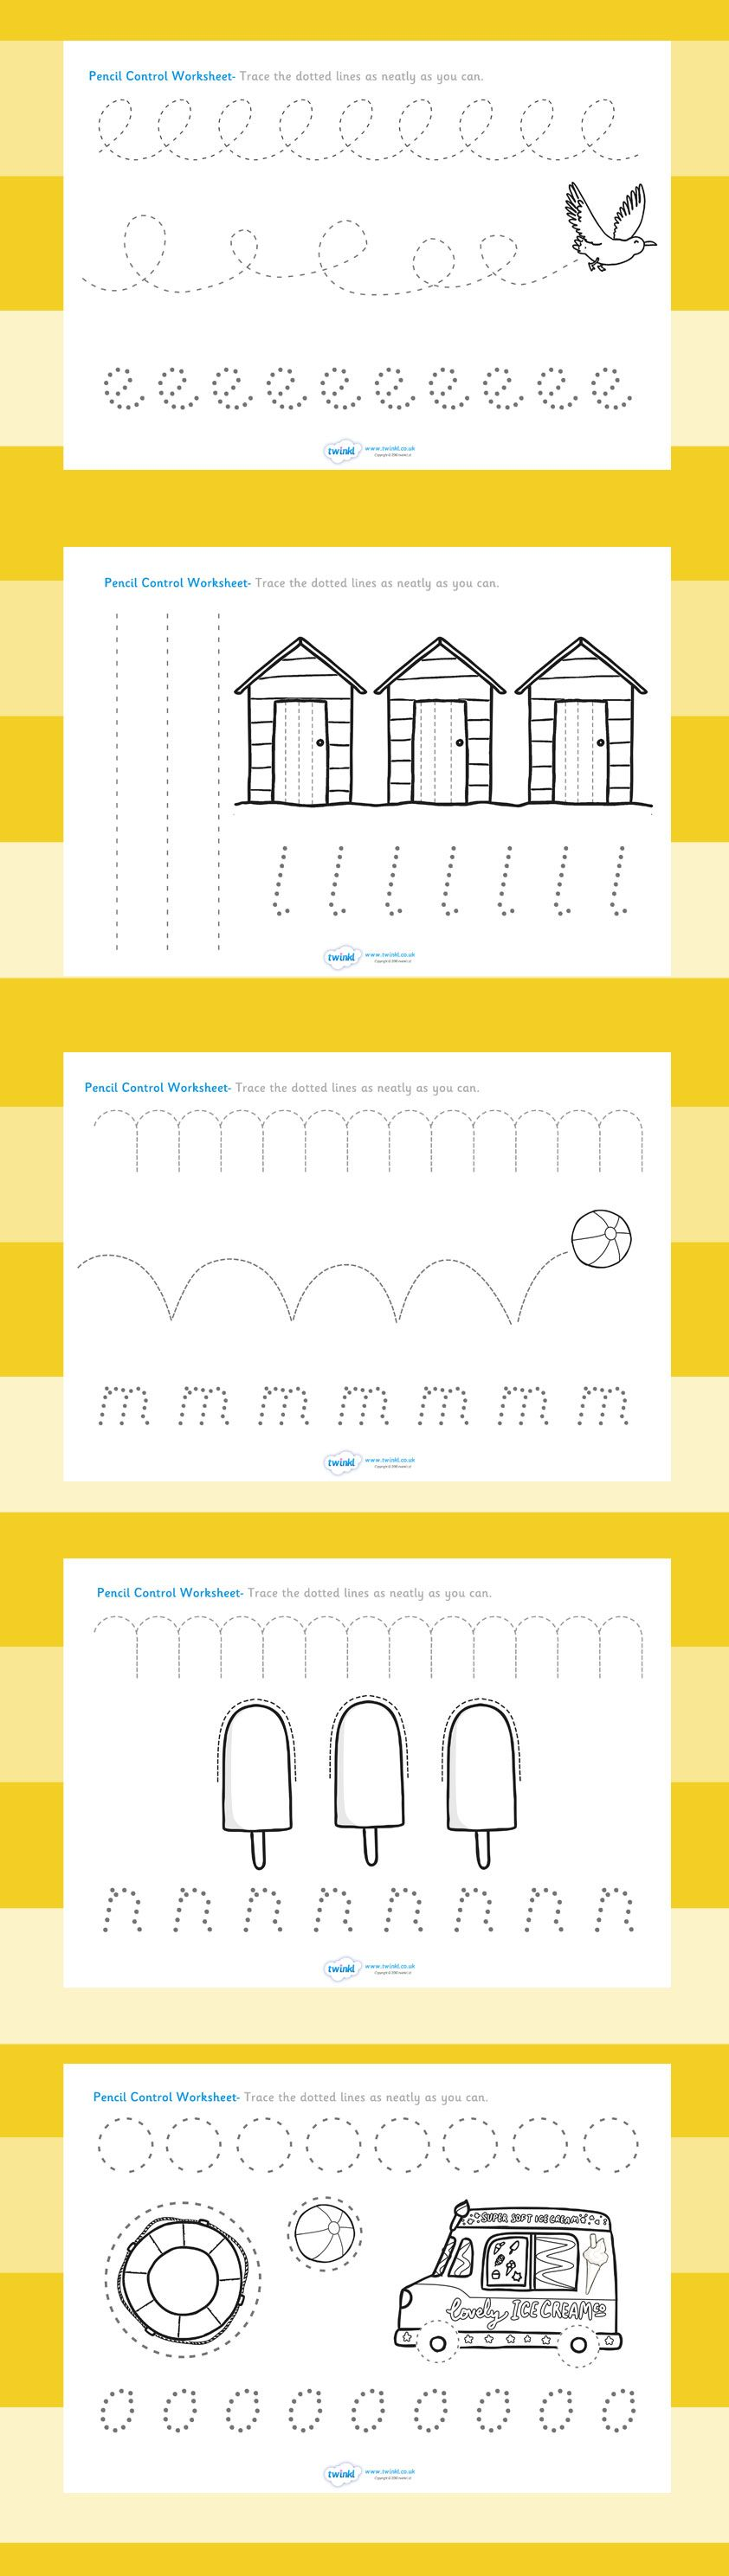 worksheet Free Pencil Control Worksheets my kids love these free pencil control worksheets perfect for daily warm up exercises includes lowercase uppercase letters pinterest workshee